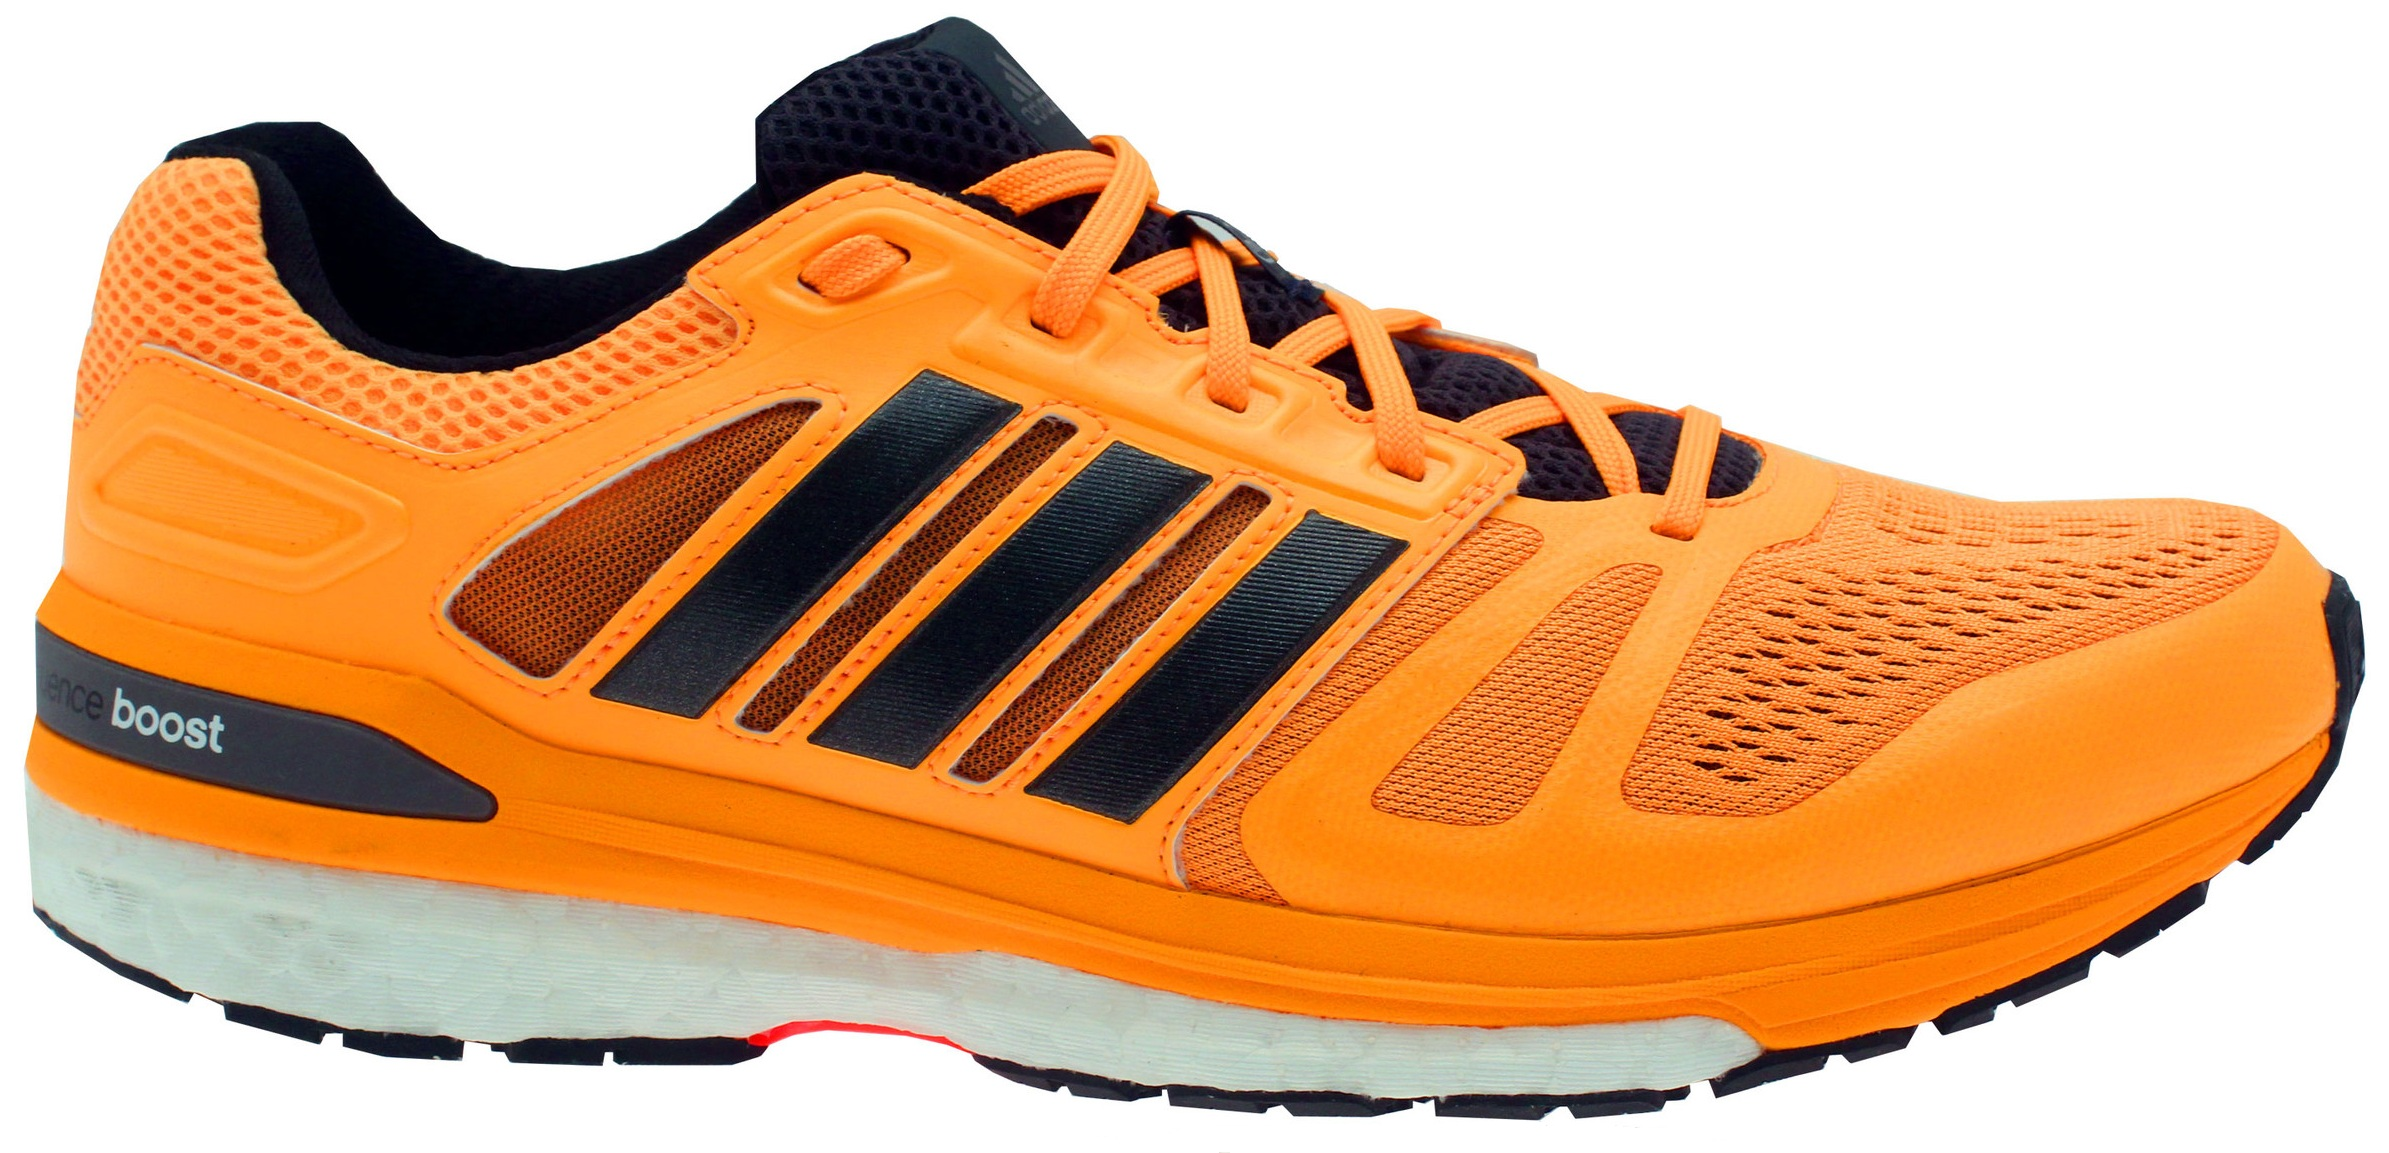 adidas-supernova-boost-sequence-7